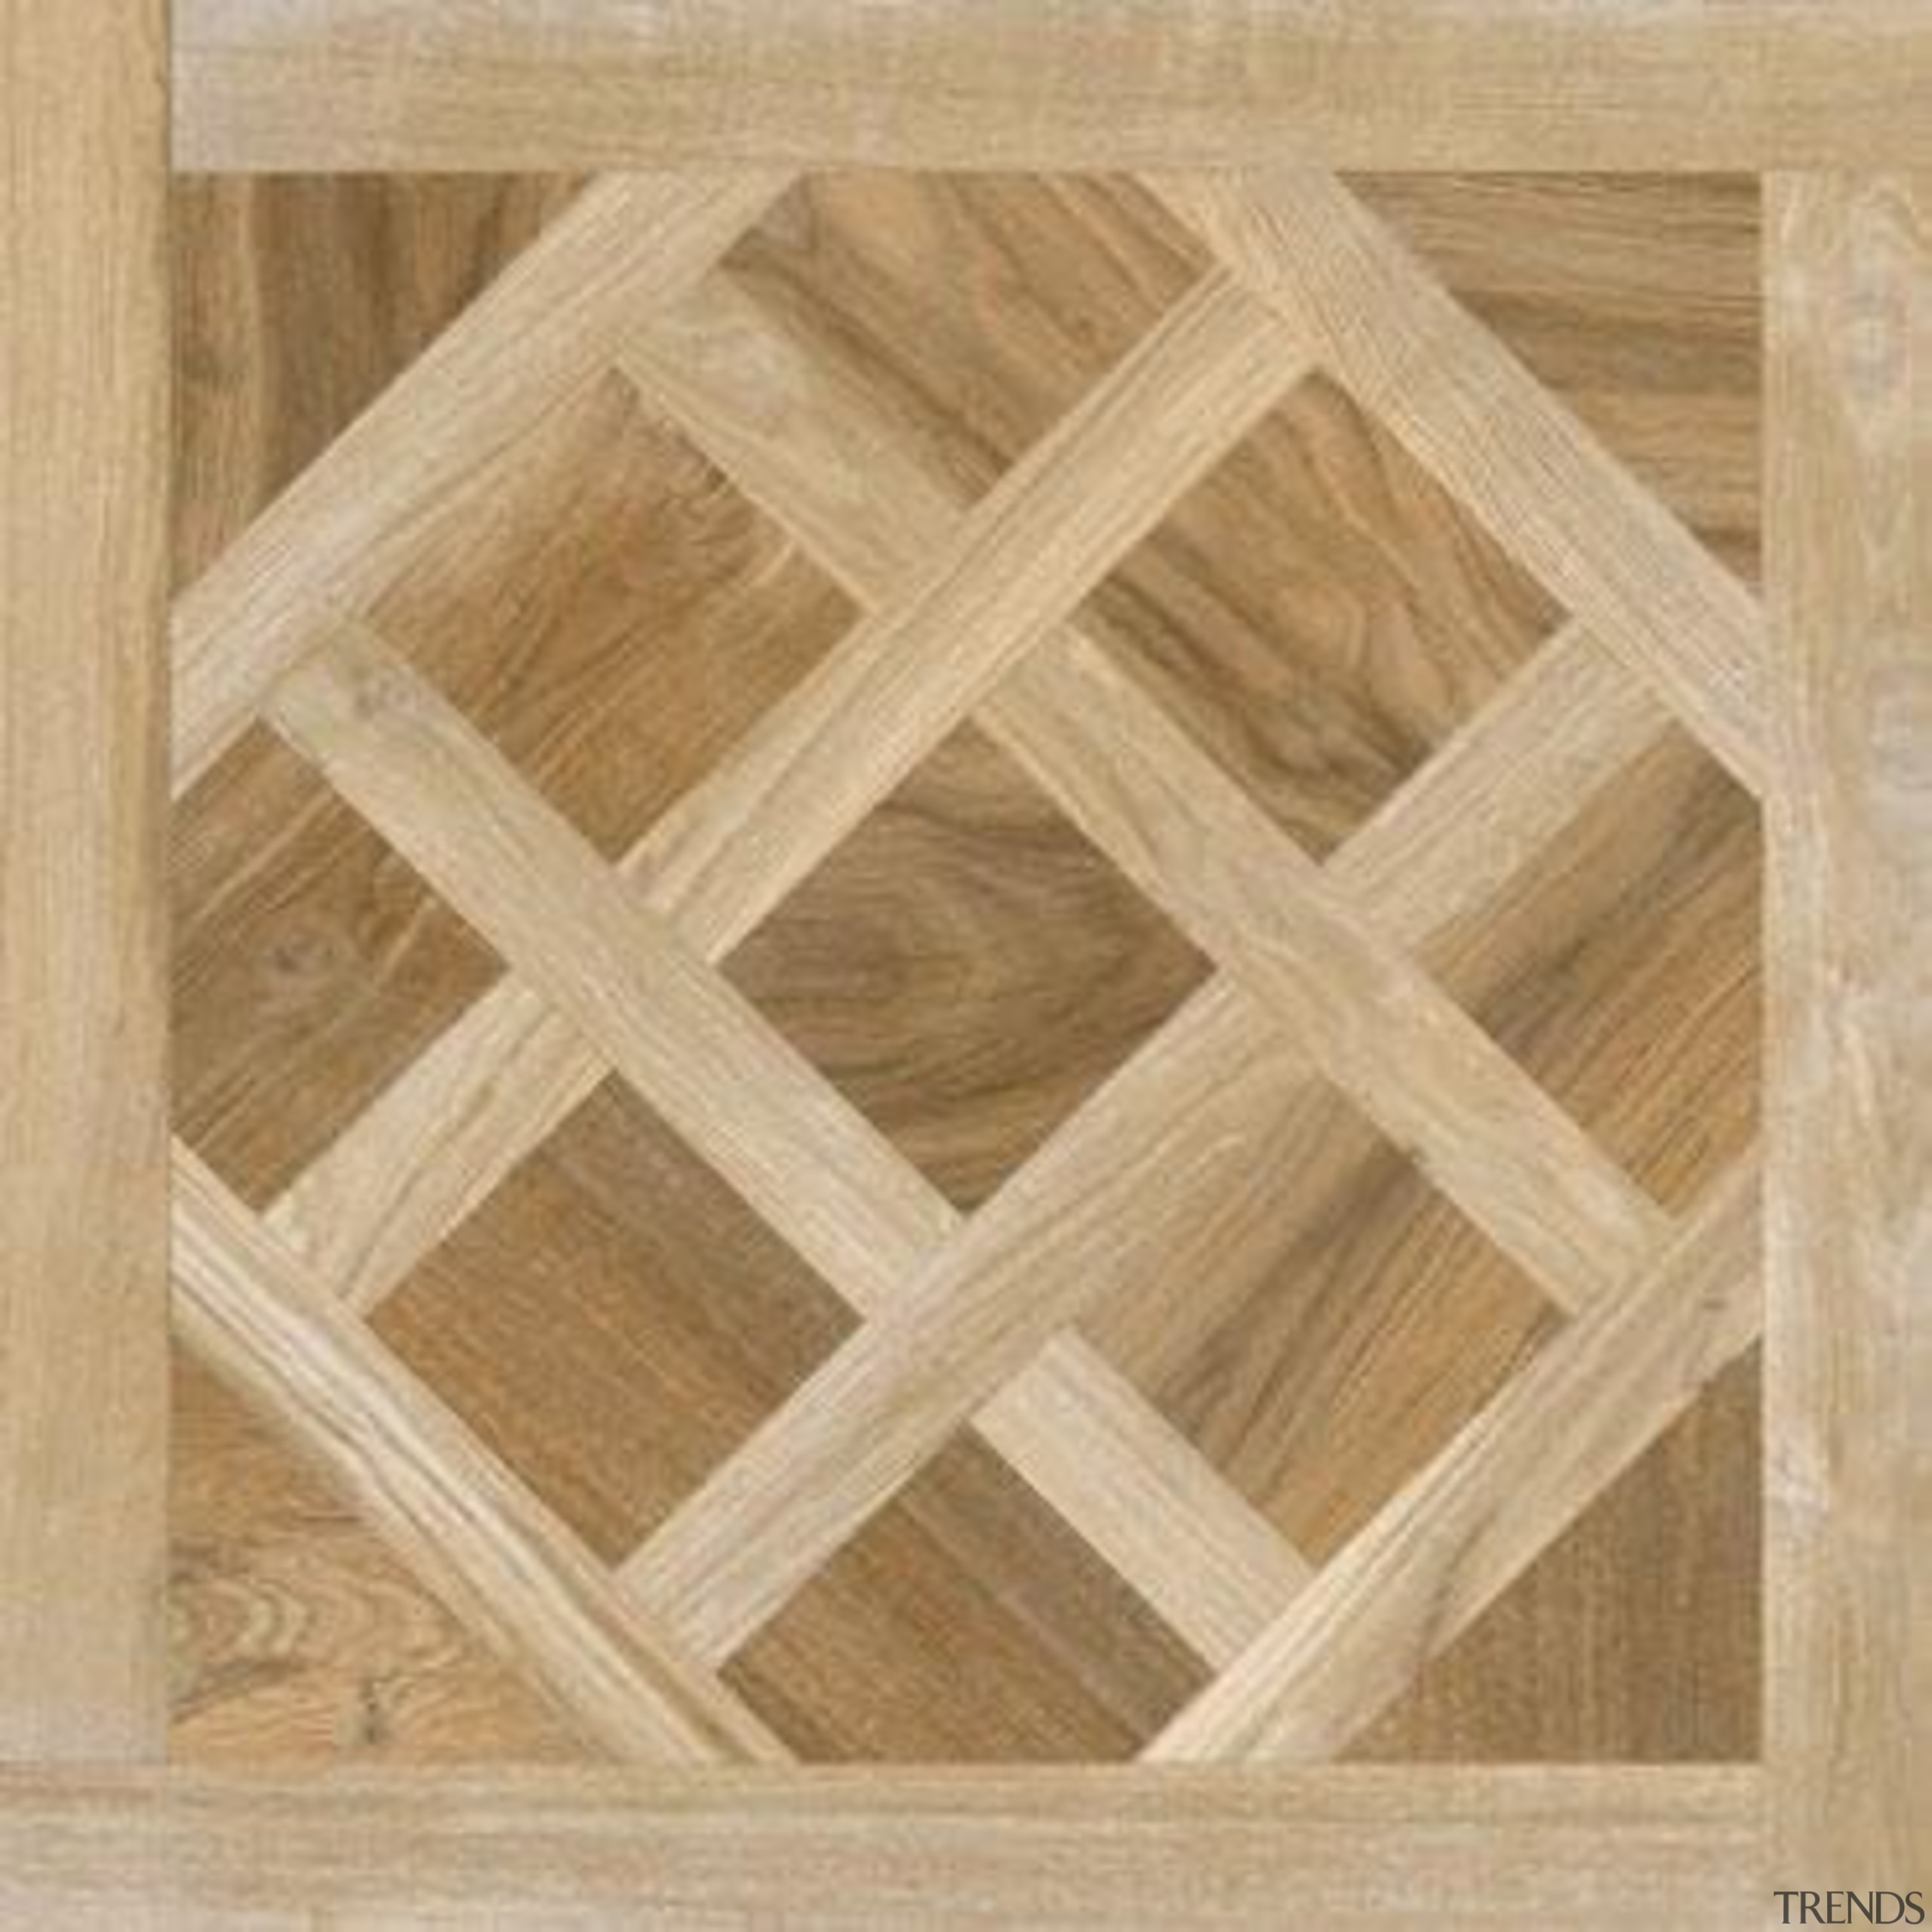 The charm of antique parquet flooring is now floor, flooring, hardwood, line, plywood, wood, wood flooring, wood stain, orange, brown